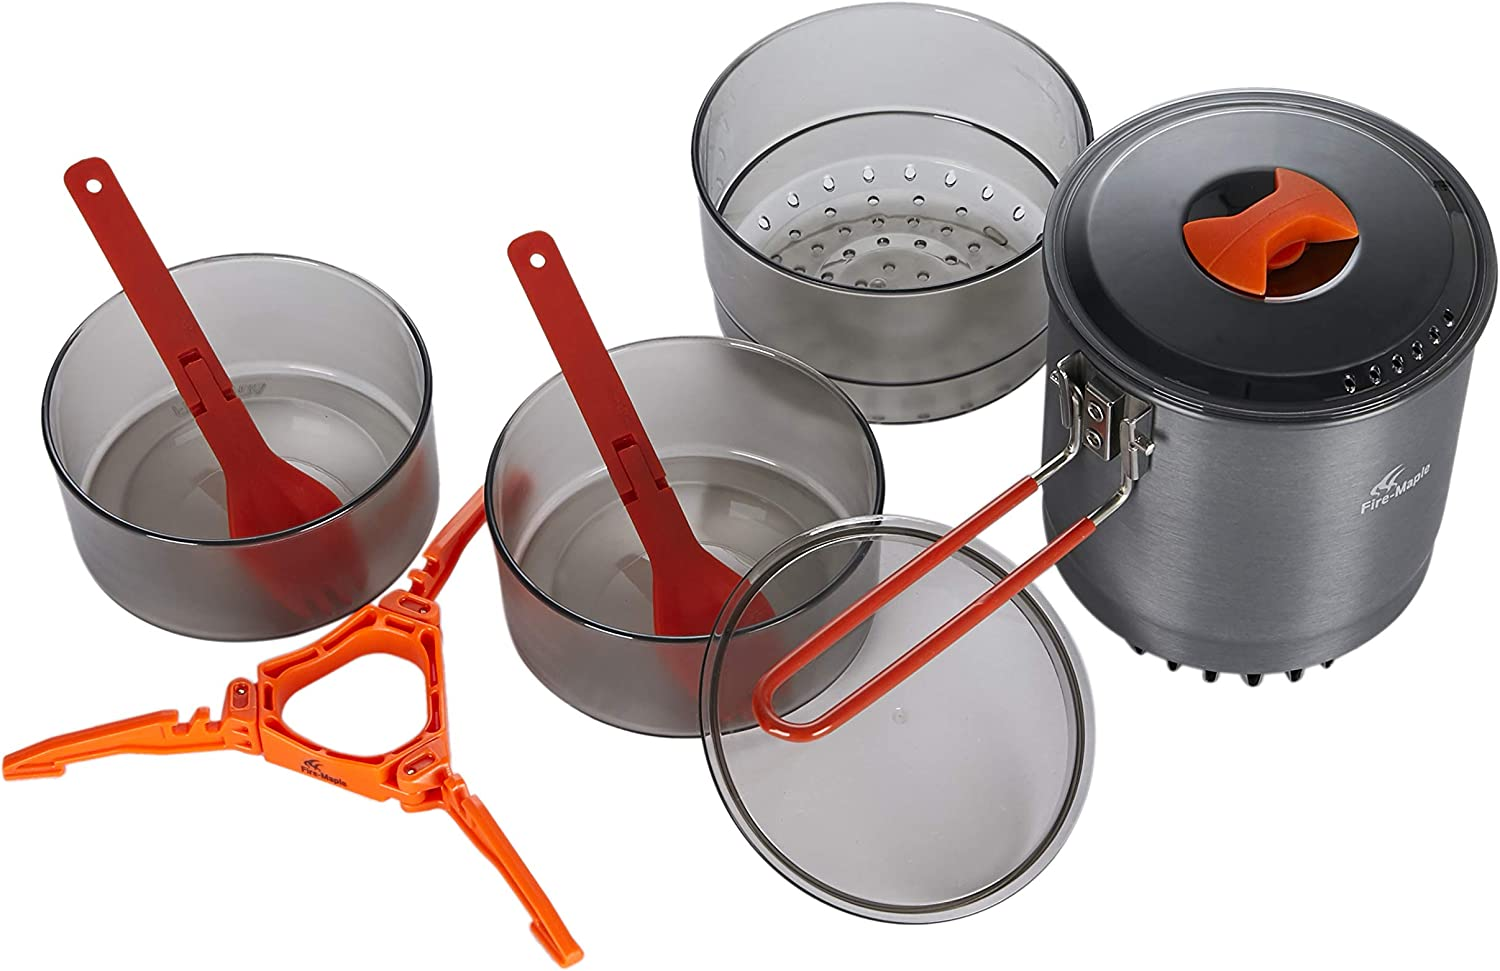 Fire-Maple Island Steamer Kit, Deluxe Outdoor Cookset with Steamer Cooking Basket   Camping Cookware   10 Piece Pot and Mess Kit   Essential Camping Accessories